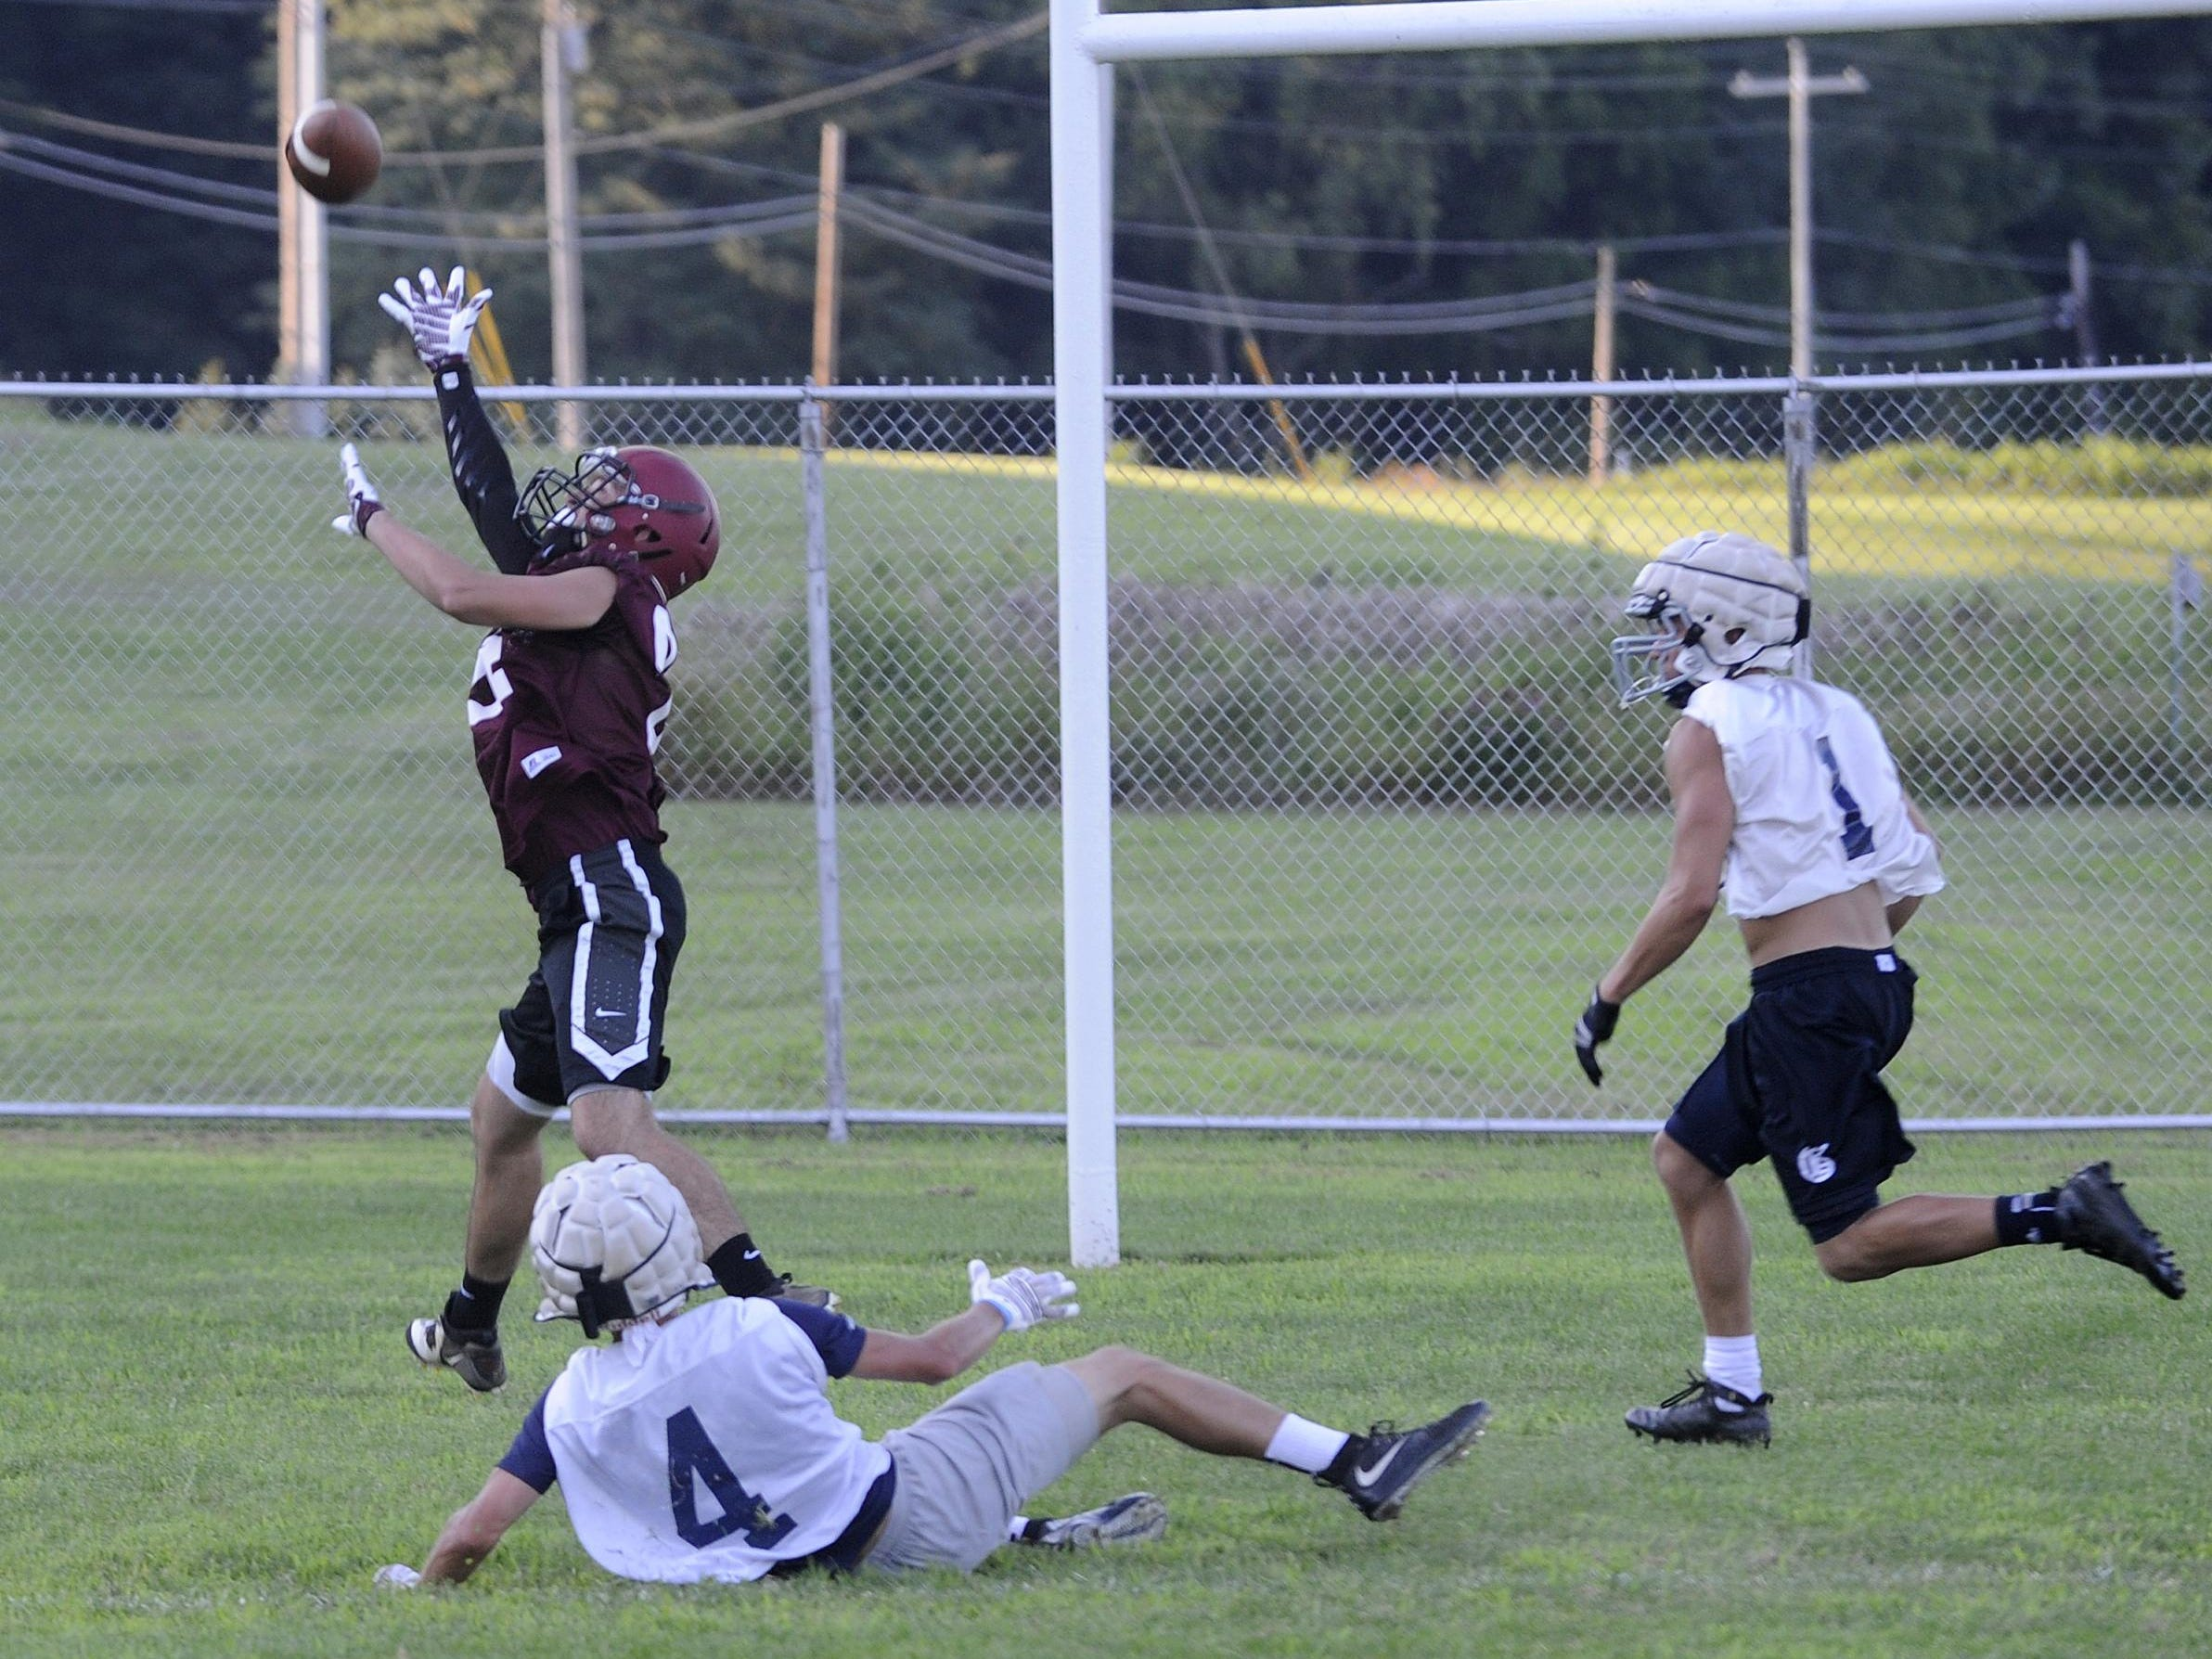 Newark's Iziah Culver stretches for a long pass against defense from Granville's Jake Peterson and Thaddeus Winston during a 7-on-7 passing scrimmage Thursday at Evans Athletic Complex.